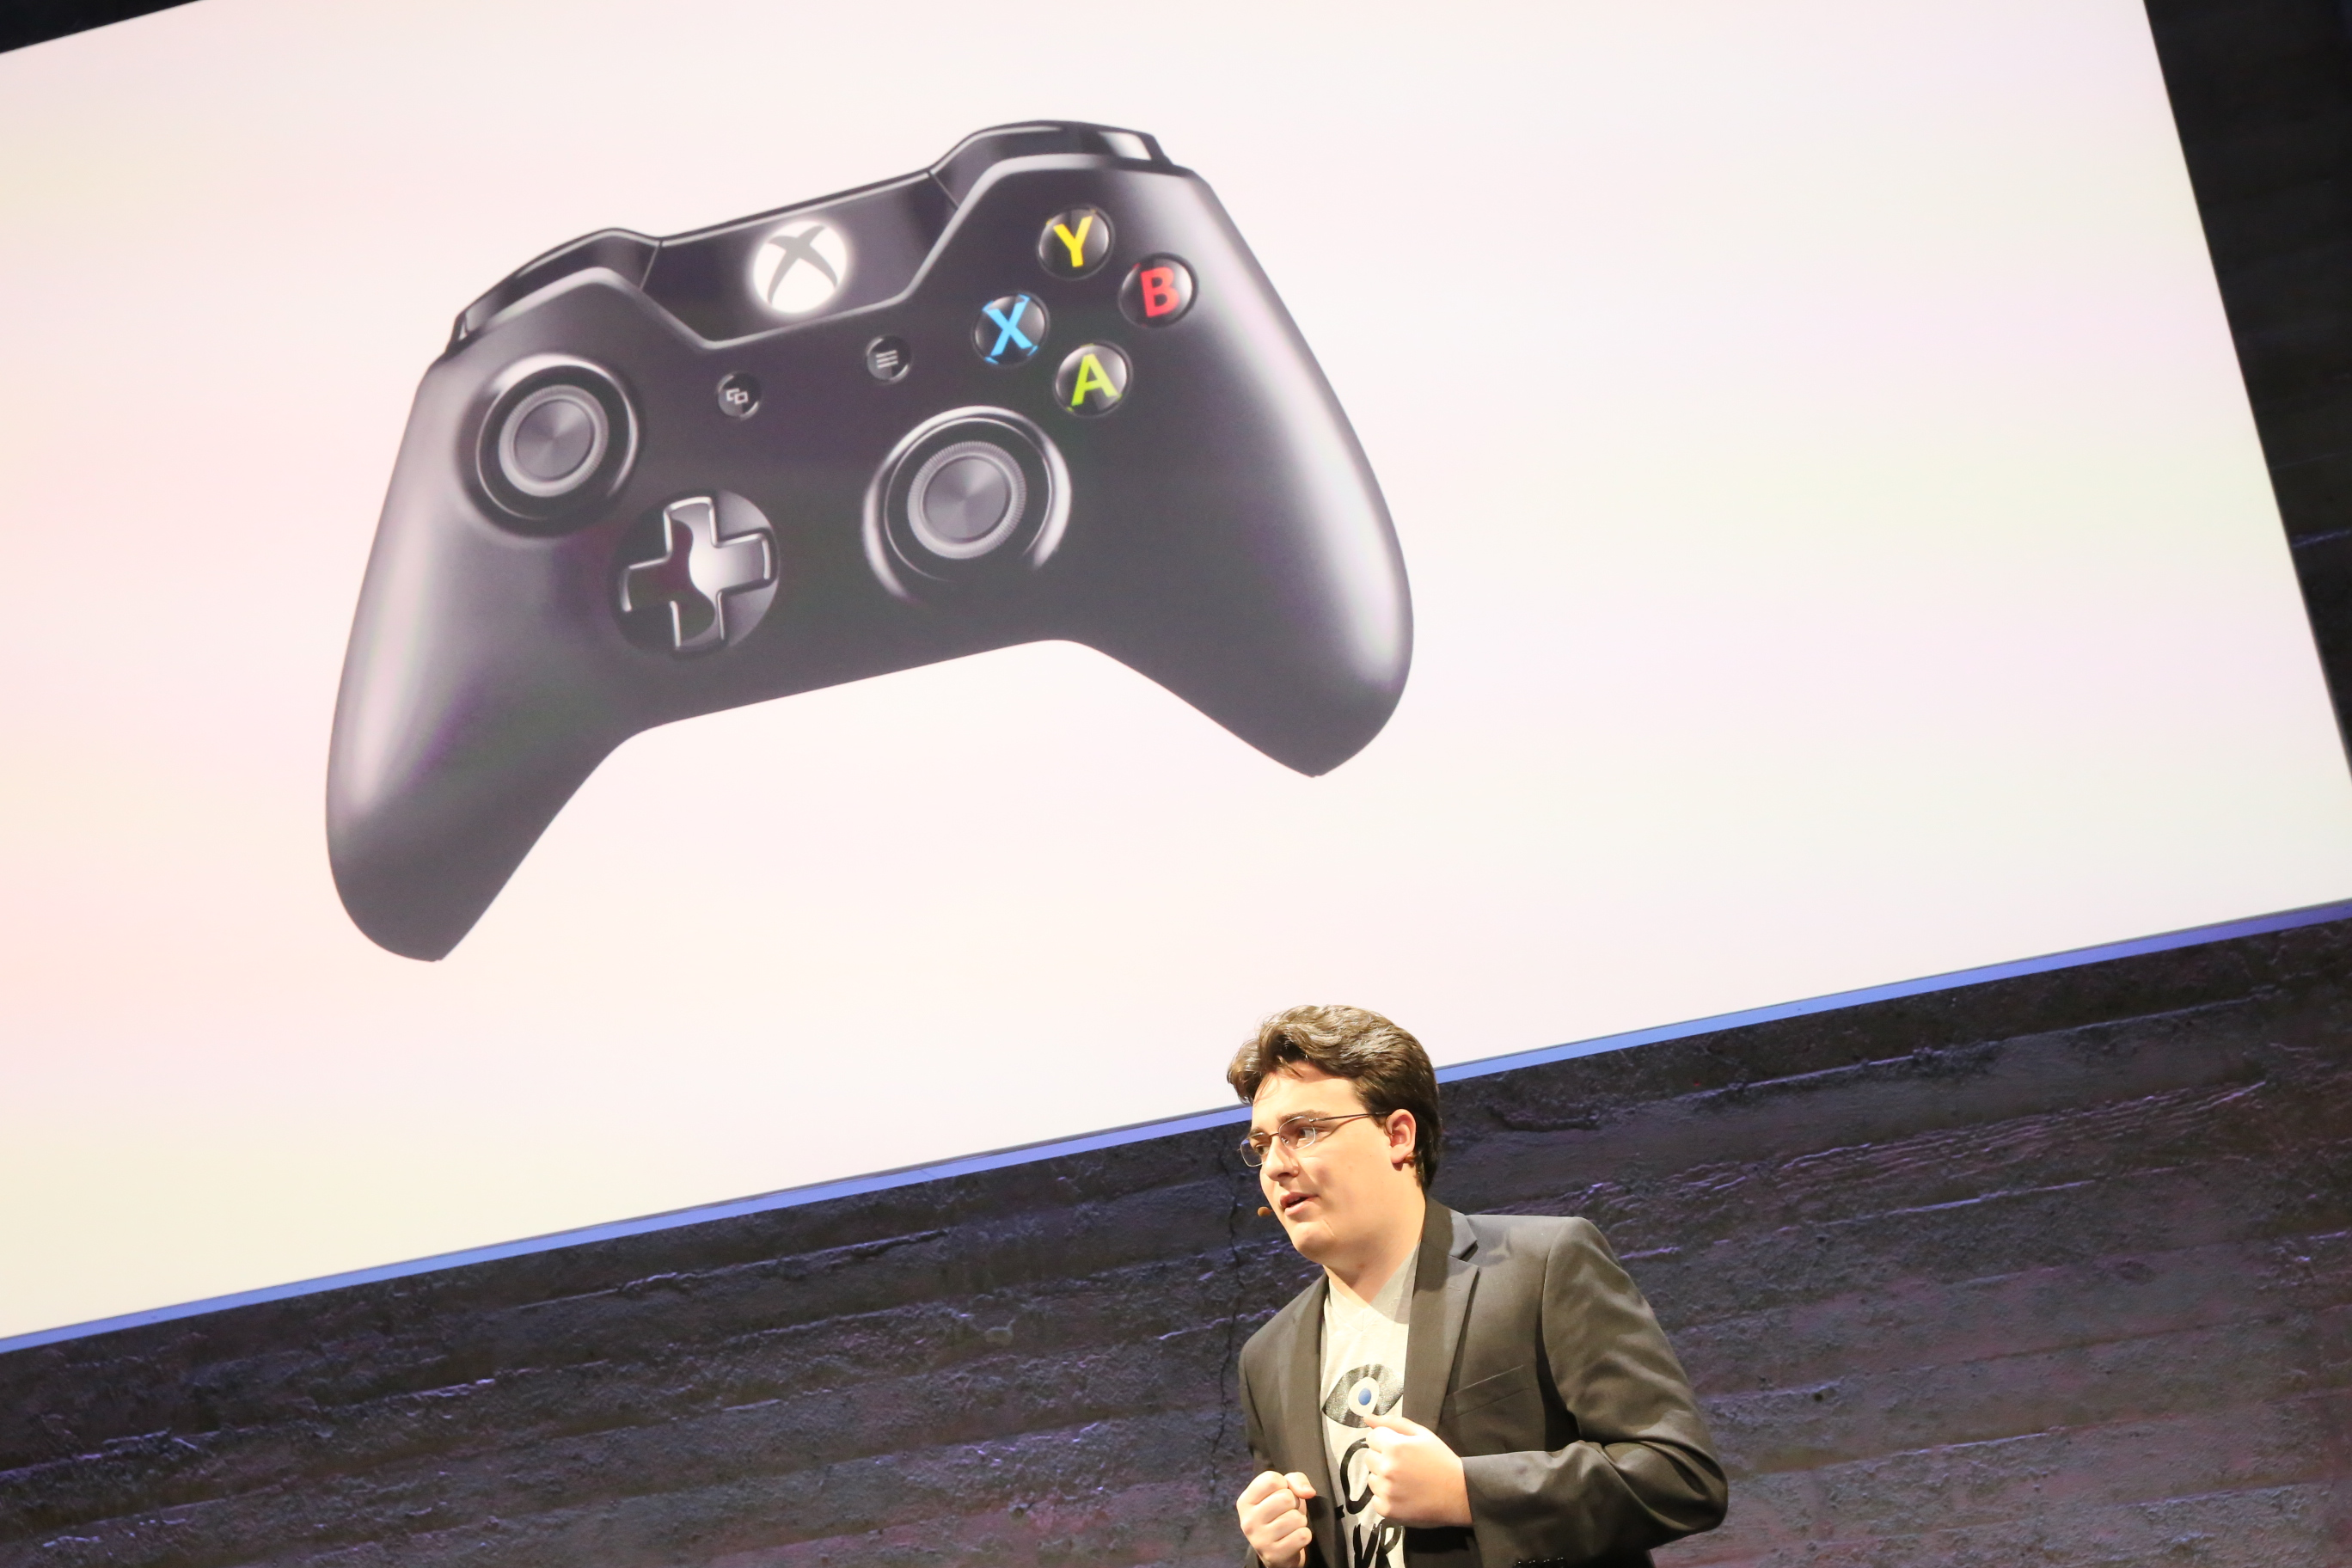 Microsoft is a key partner for the Oculus Rift launch, since an Xbox One controller is bundled with every unit.